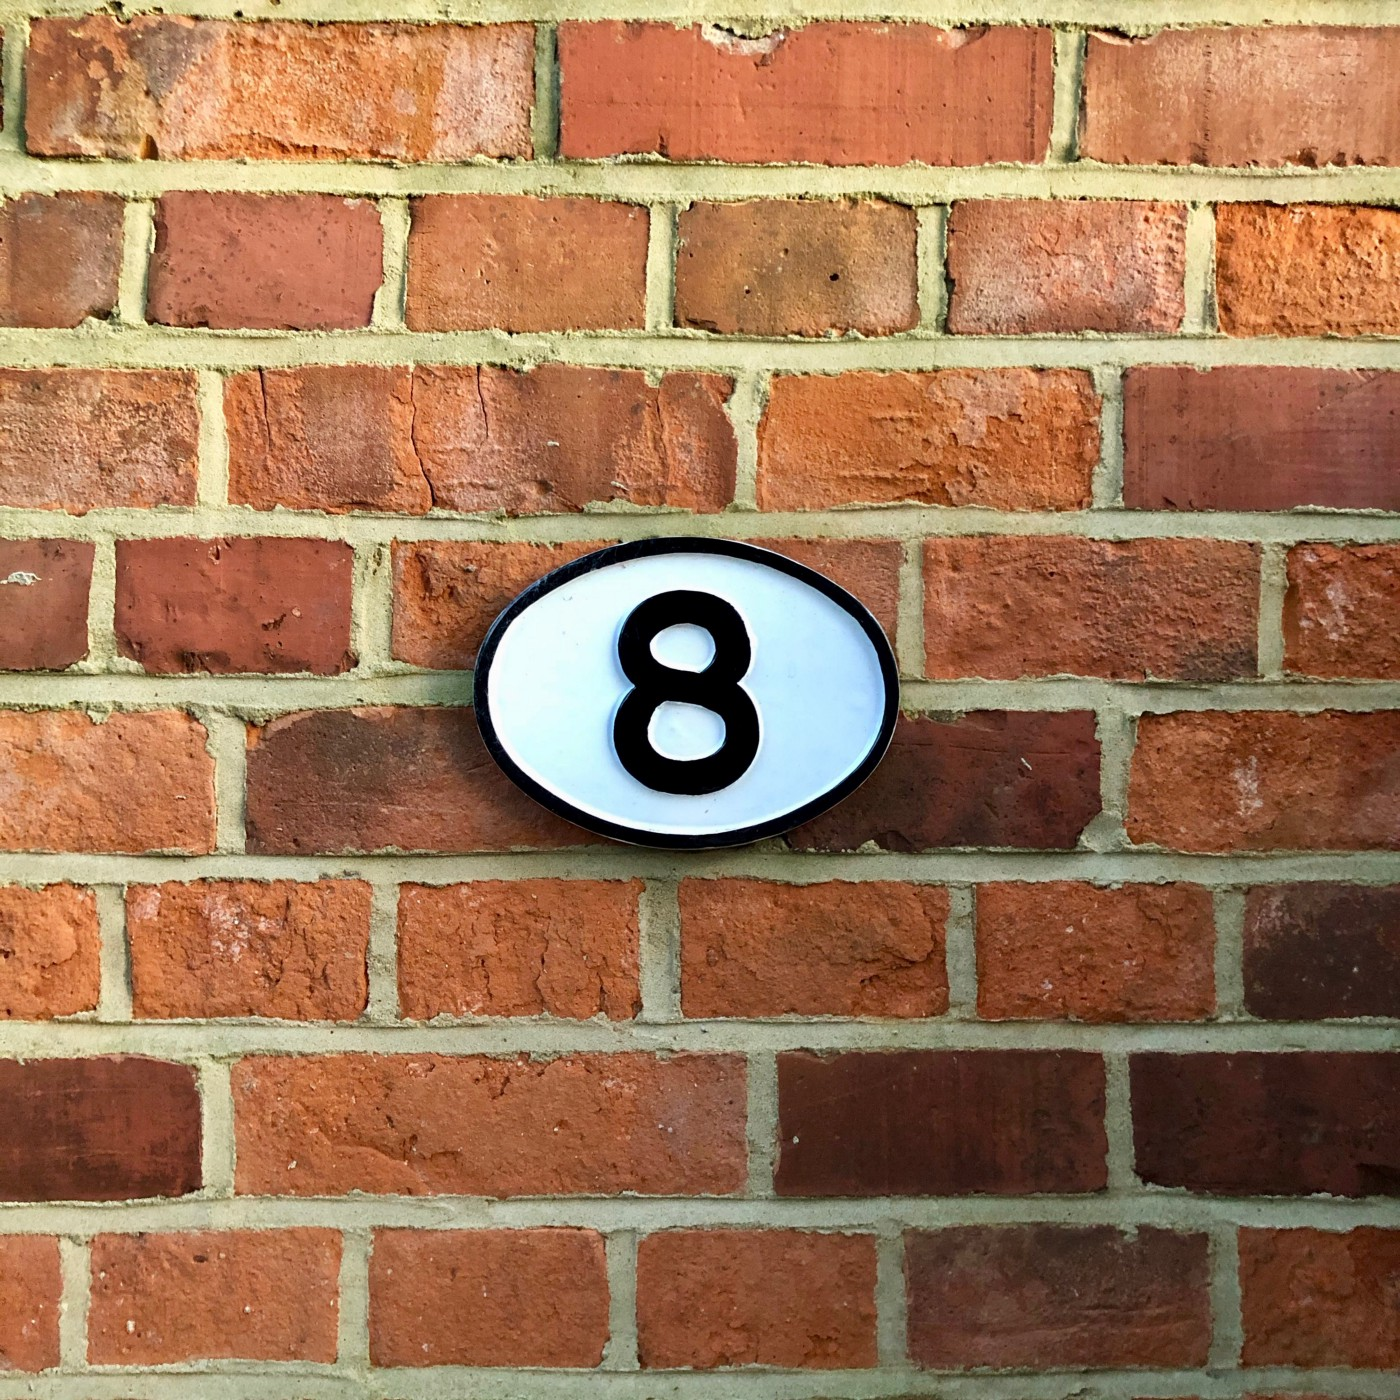 A sign with the number 8 is posted on the middle of a brick wall. The sign is oval in shape, and black and white in color. The bricks are red and brown.